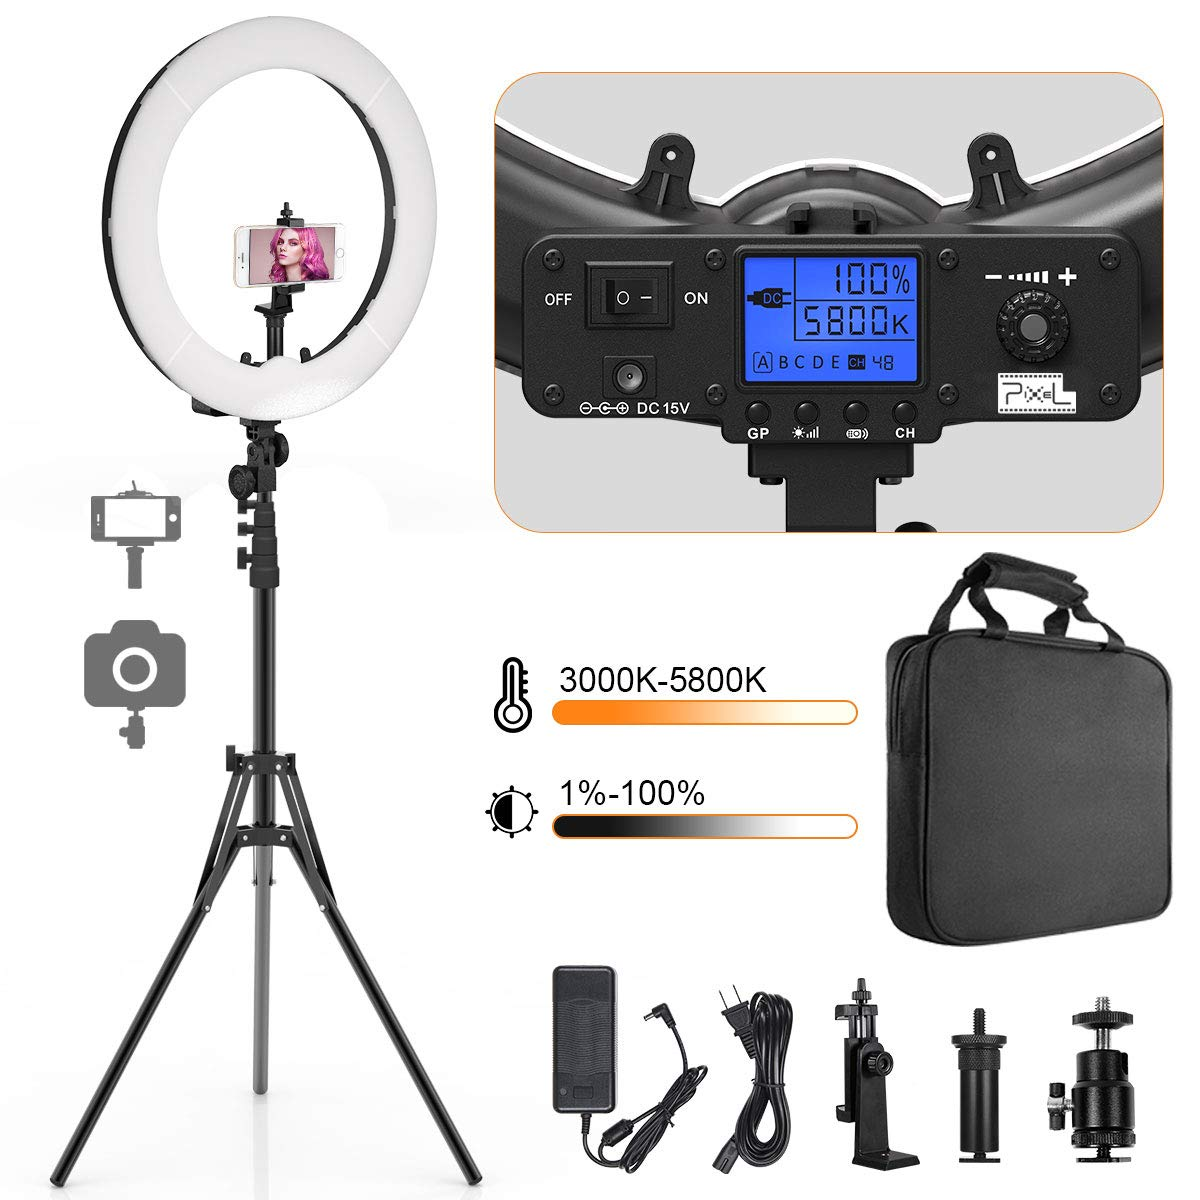 Ring Light, Pixel 19'' Bi-Color LCD Display Ring Light with Stand, 55W 3000-5800K CRI≥97 Light Ring for Vlogging Selfie-Portrait Makeup Video Photography Shooting by PIXEL